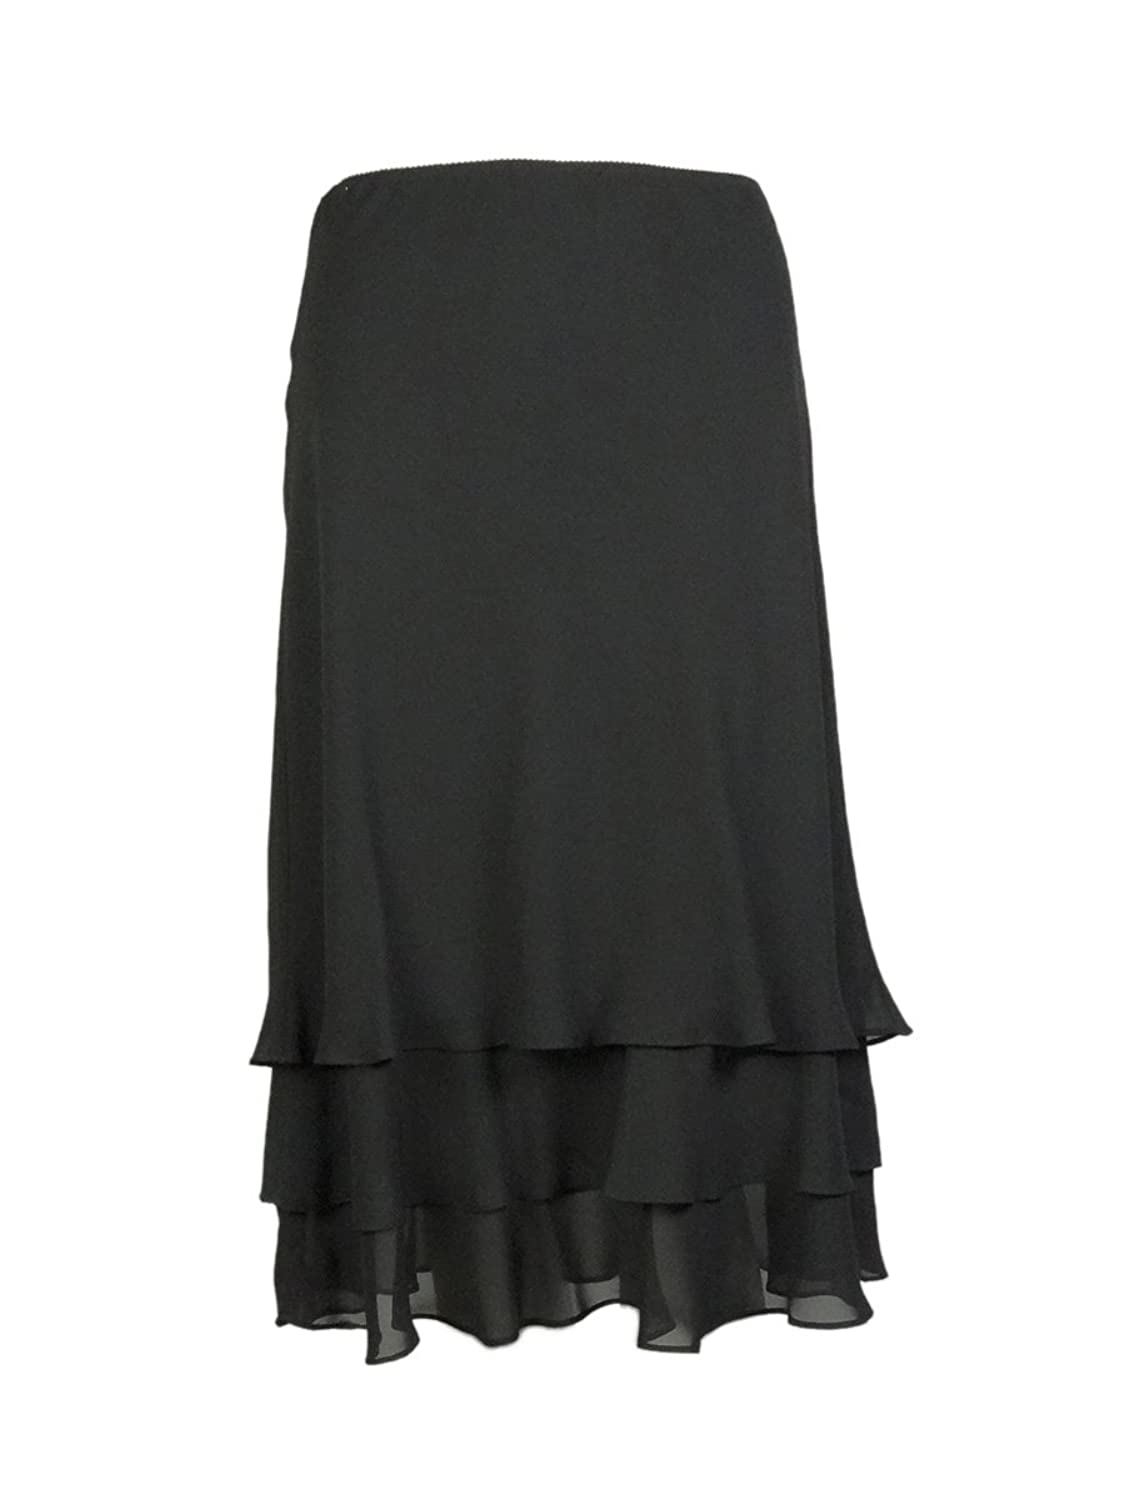 1920s Style Skirts  Tiered Chiffon Skirt $69.00 AT vintagedancer.com